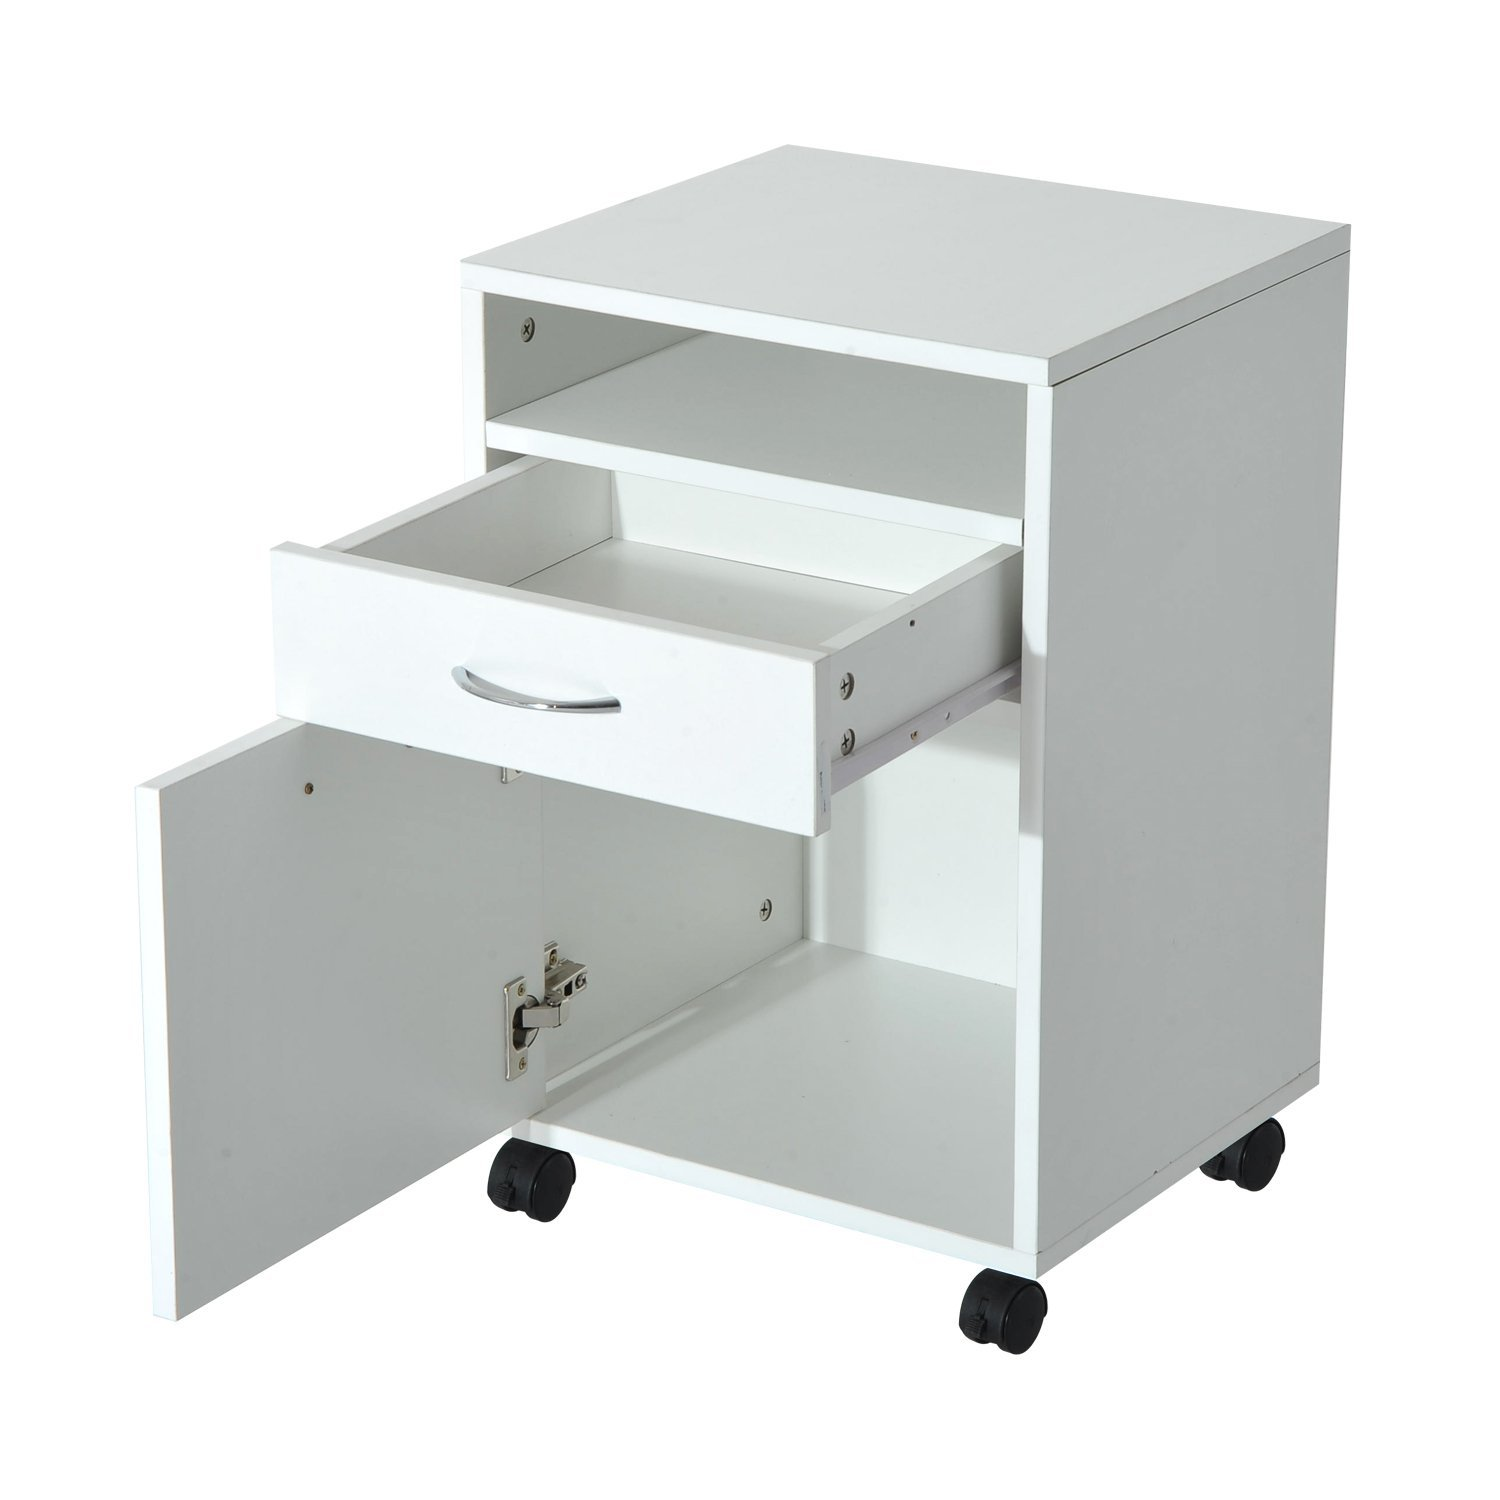 "HomCom 24"" Mobile Printer Stand / Office Storage Cabinet On Wheels - White"